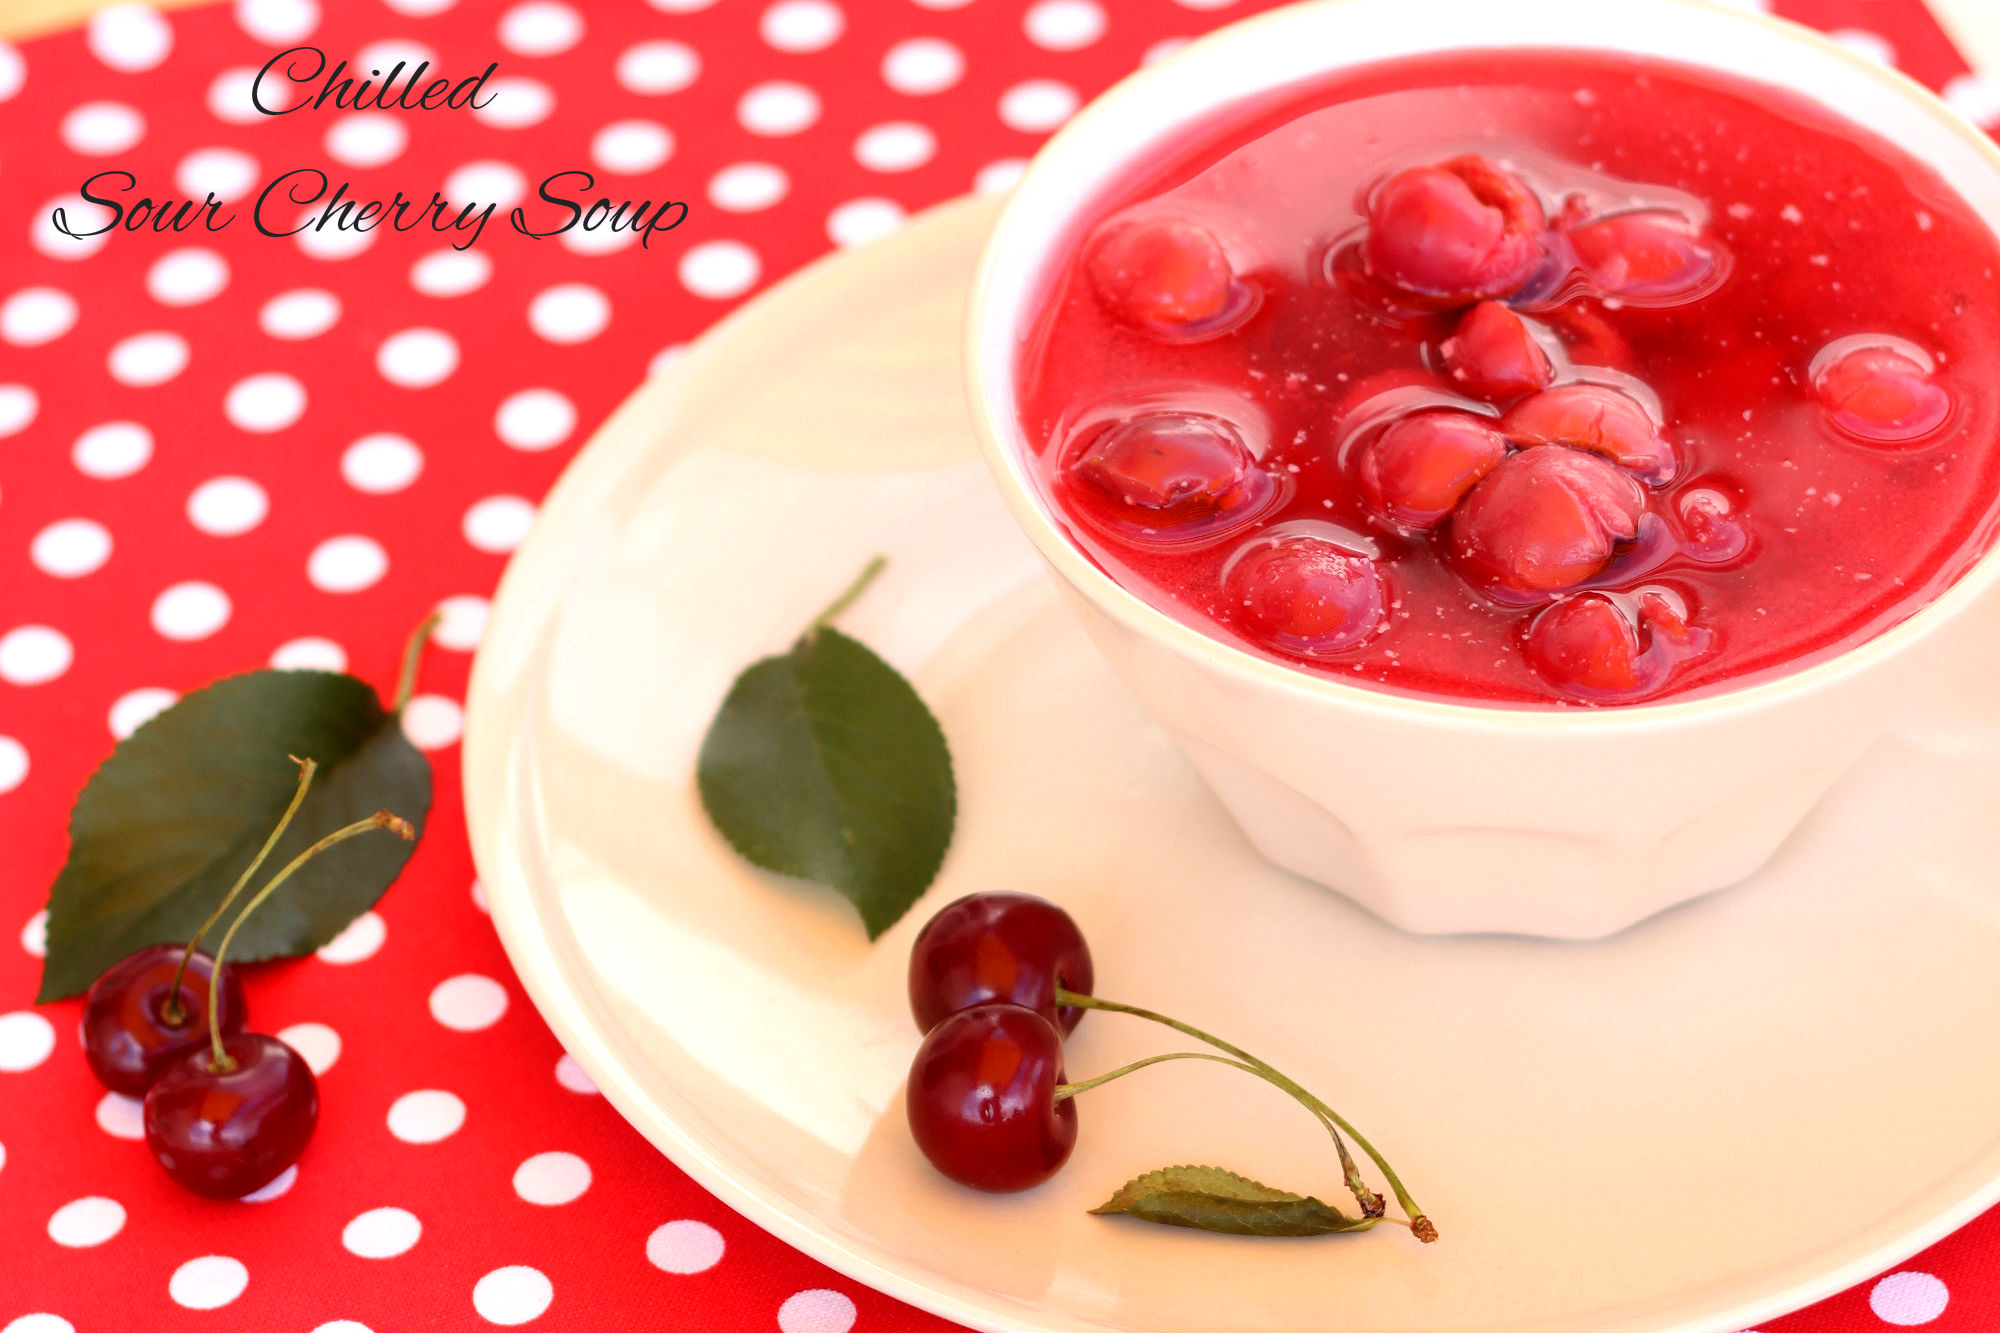 chilled cherry soup cold cherry soup kitchen chick chilled cherry soup ...